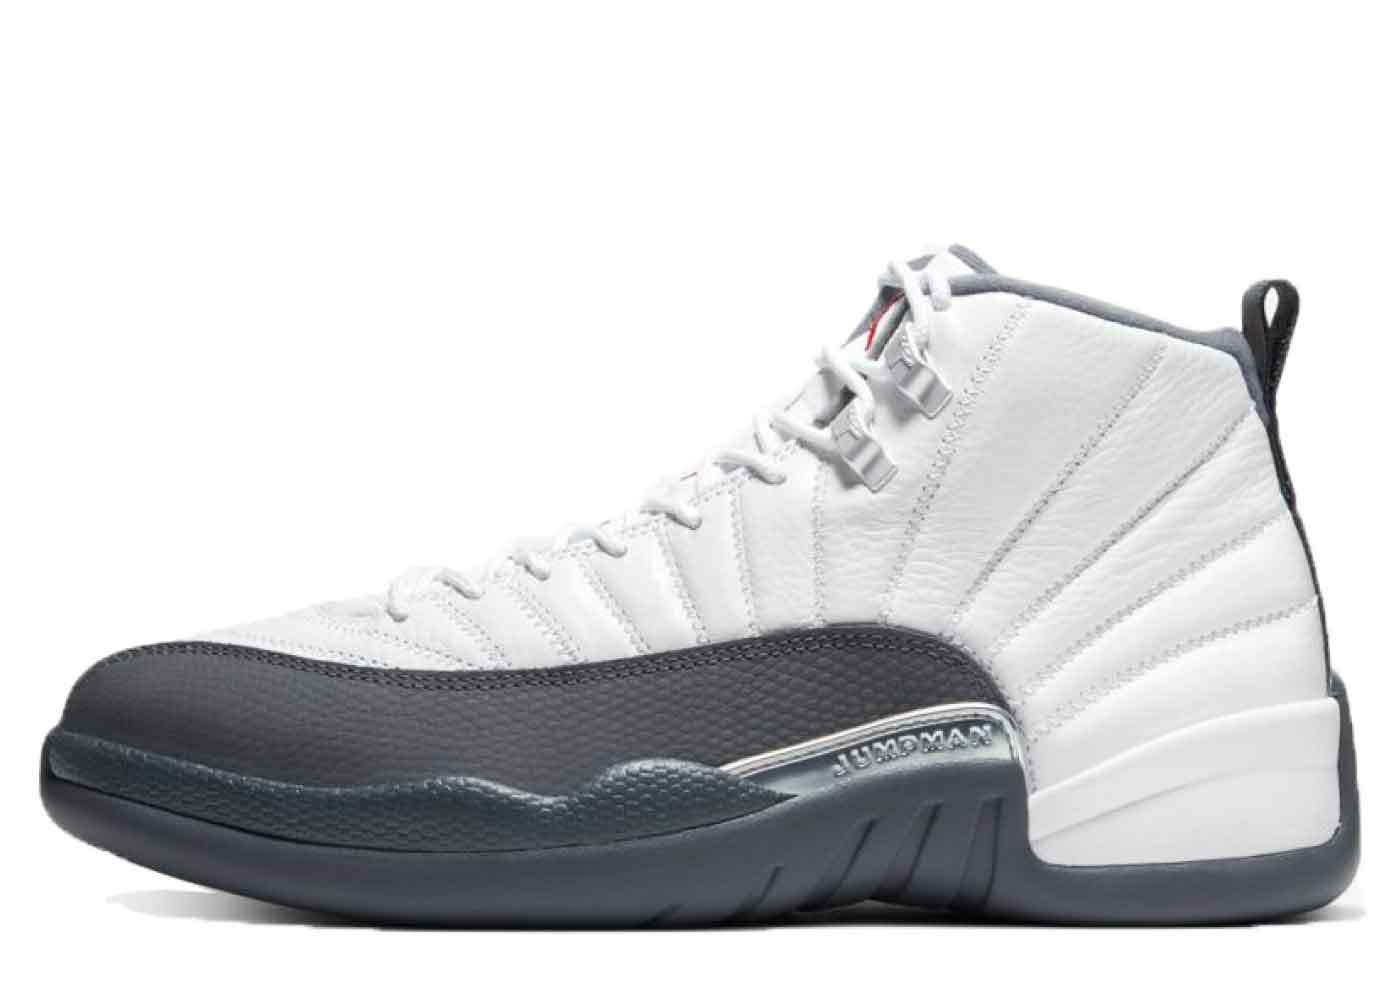 Nike Air Jordan 12 White Dark Greyの写真